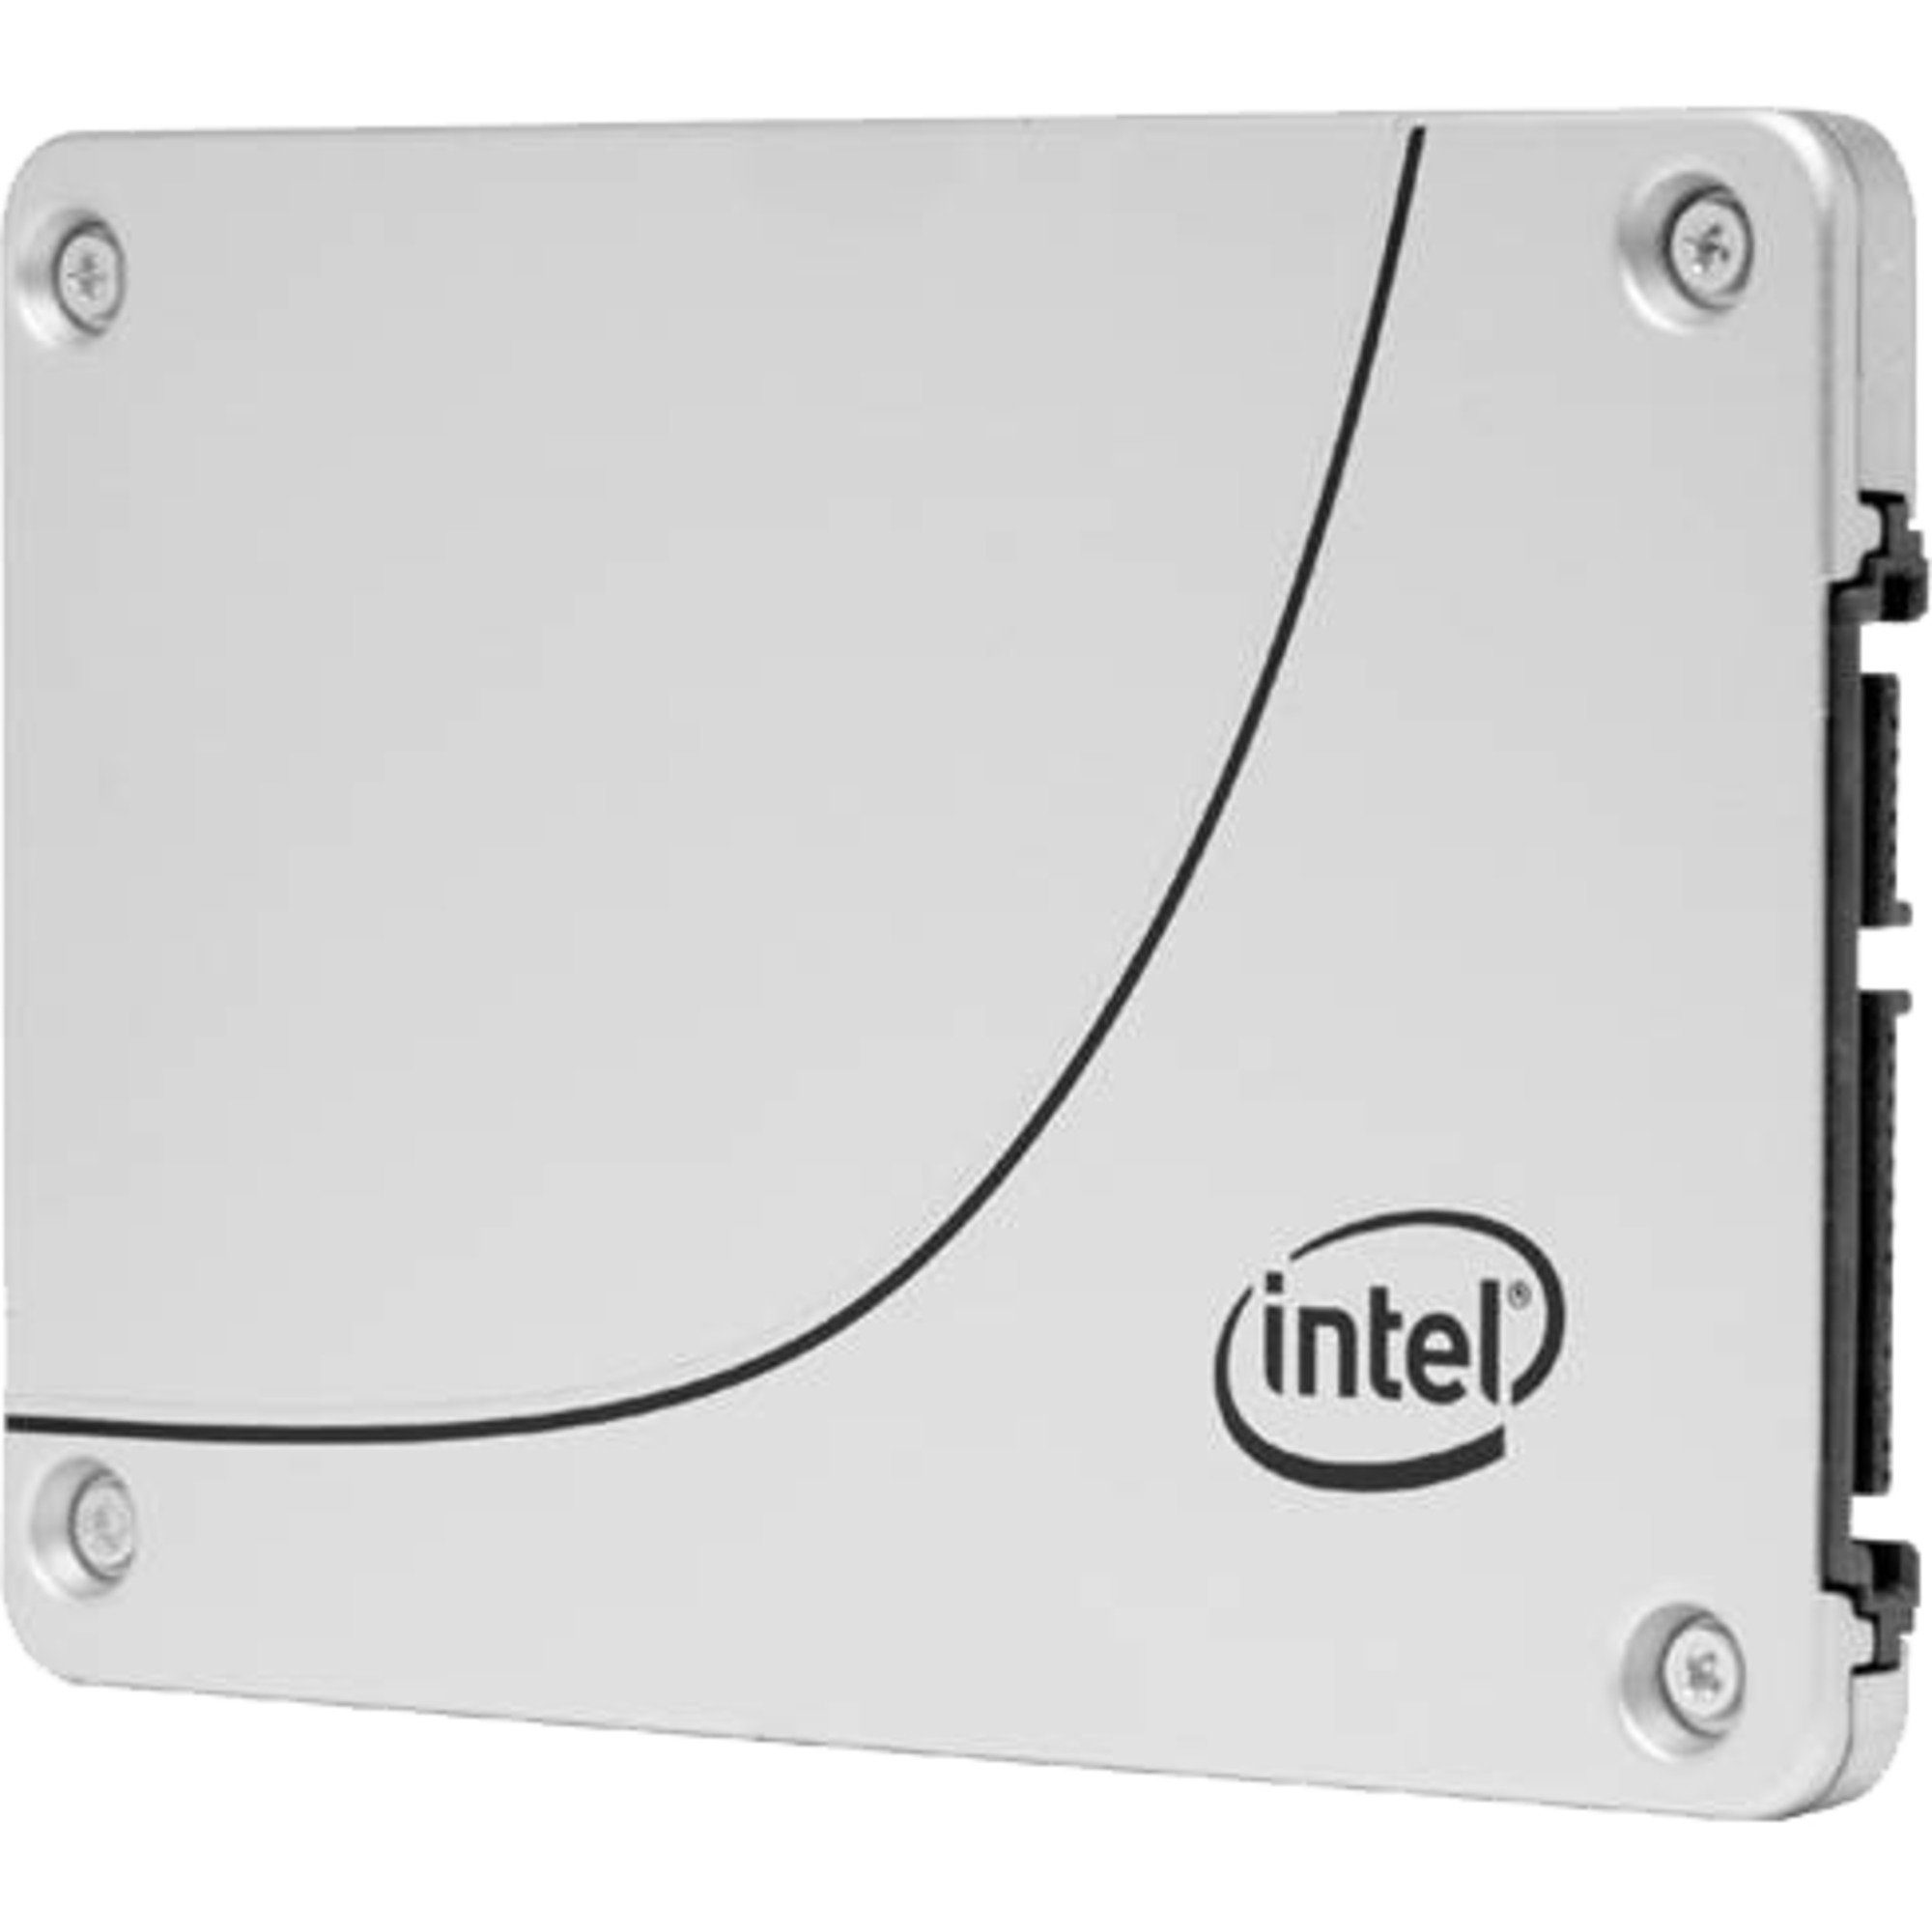 Intel® Solid State Drive »DC S3520 150 GB«